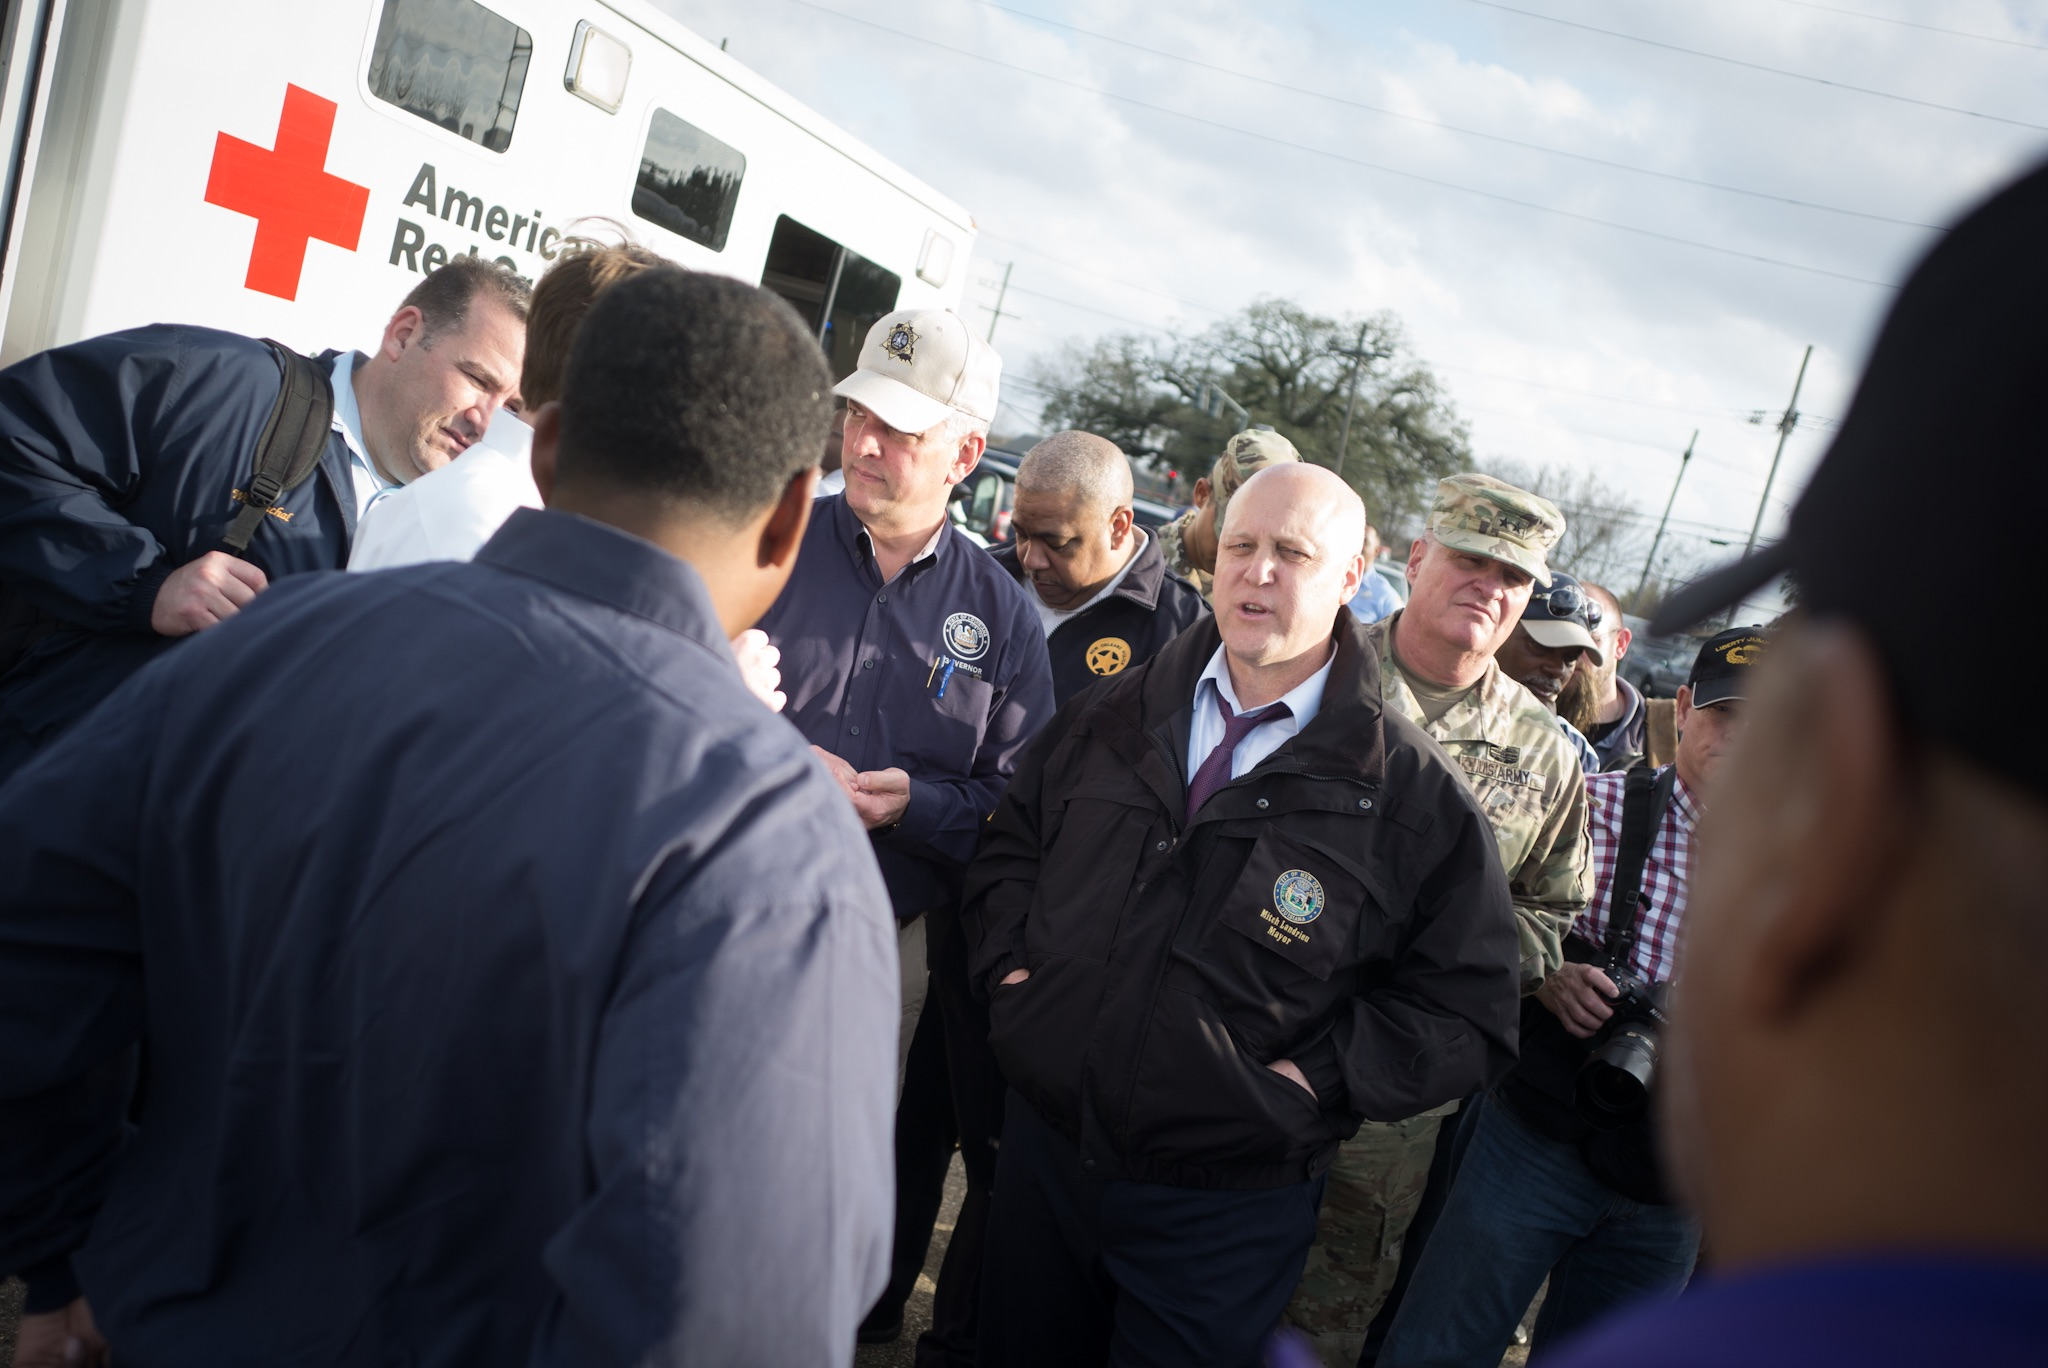 New Orleans Mayor Mitch Landrieu at the base of operations where rescue efforts are being directed following a tornado strike in New Orleans East.